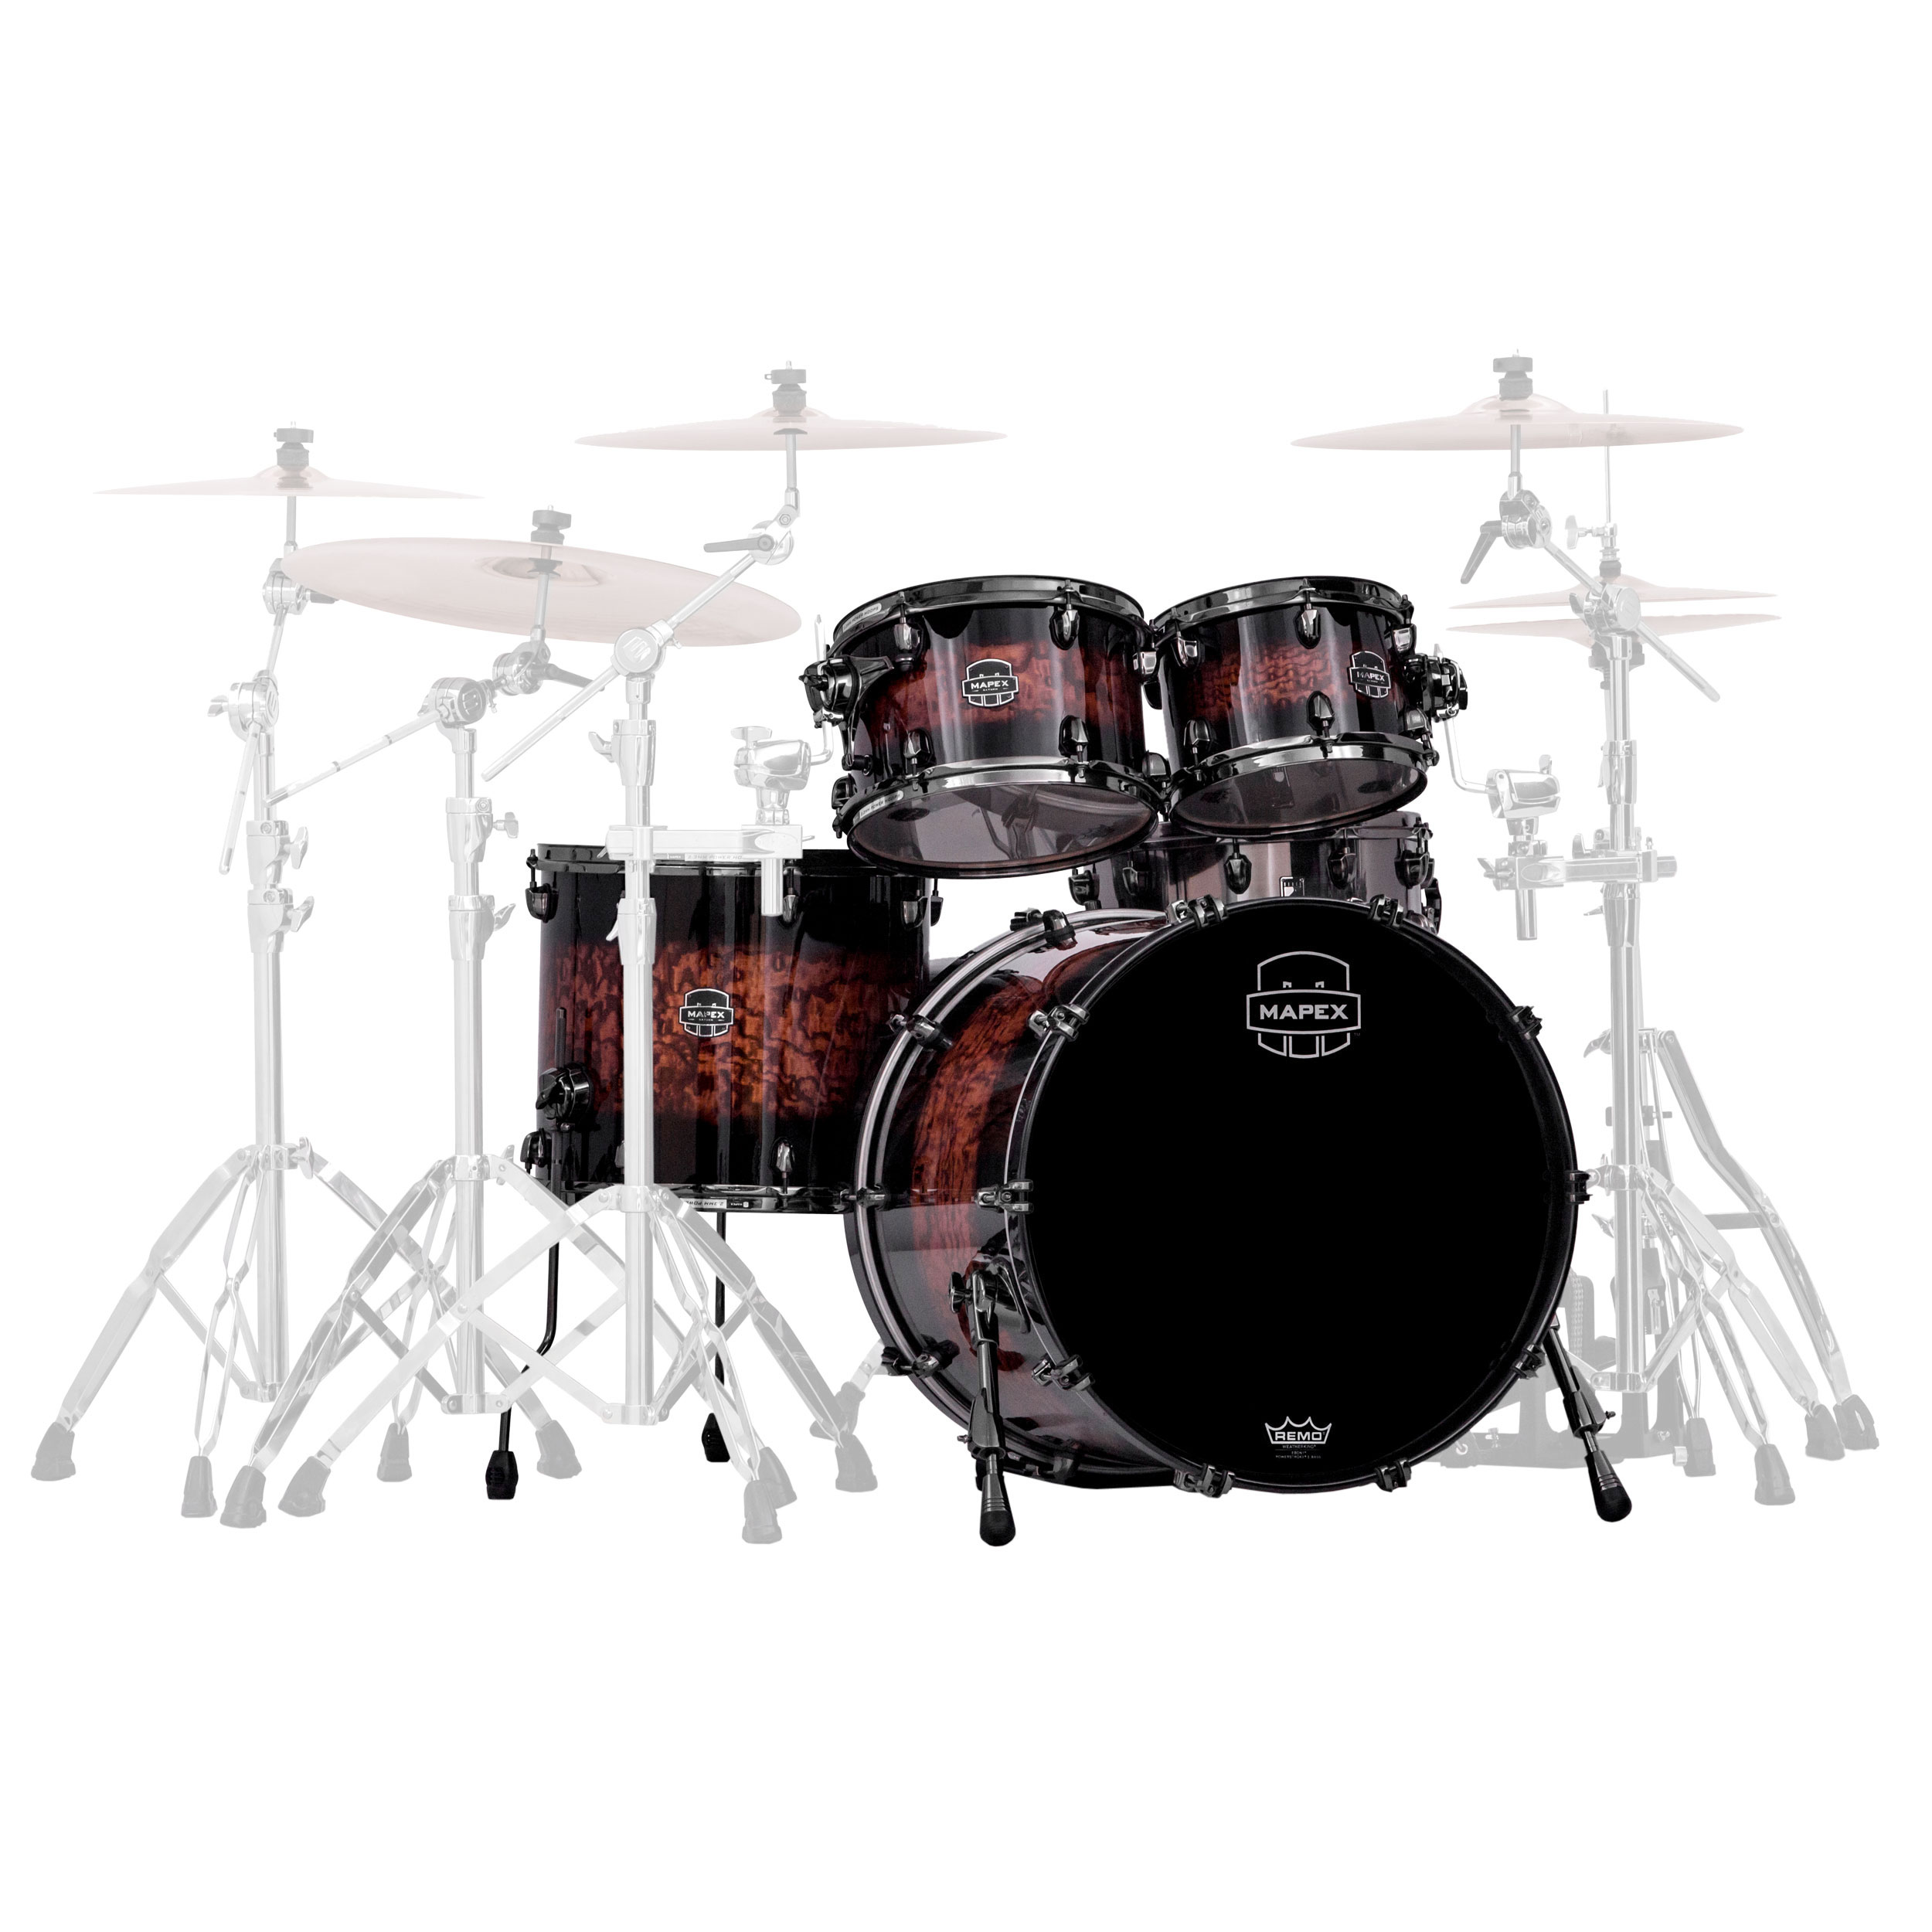 Mapex Saturn Iv Mh Exotic 4 Piece Rock Fast Drum Set Shell Pack 22 Bass 10 12 16 Toms